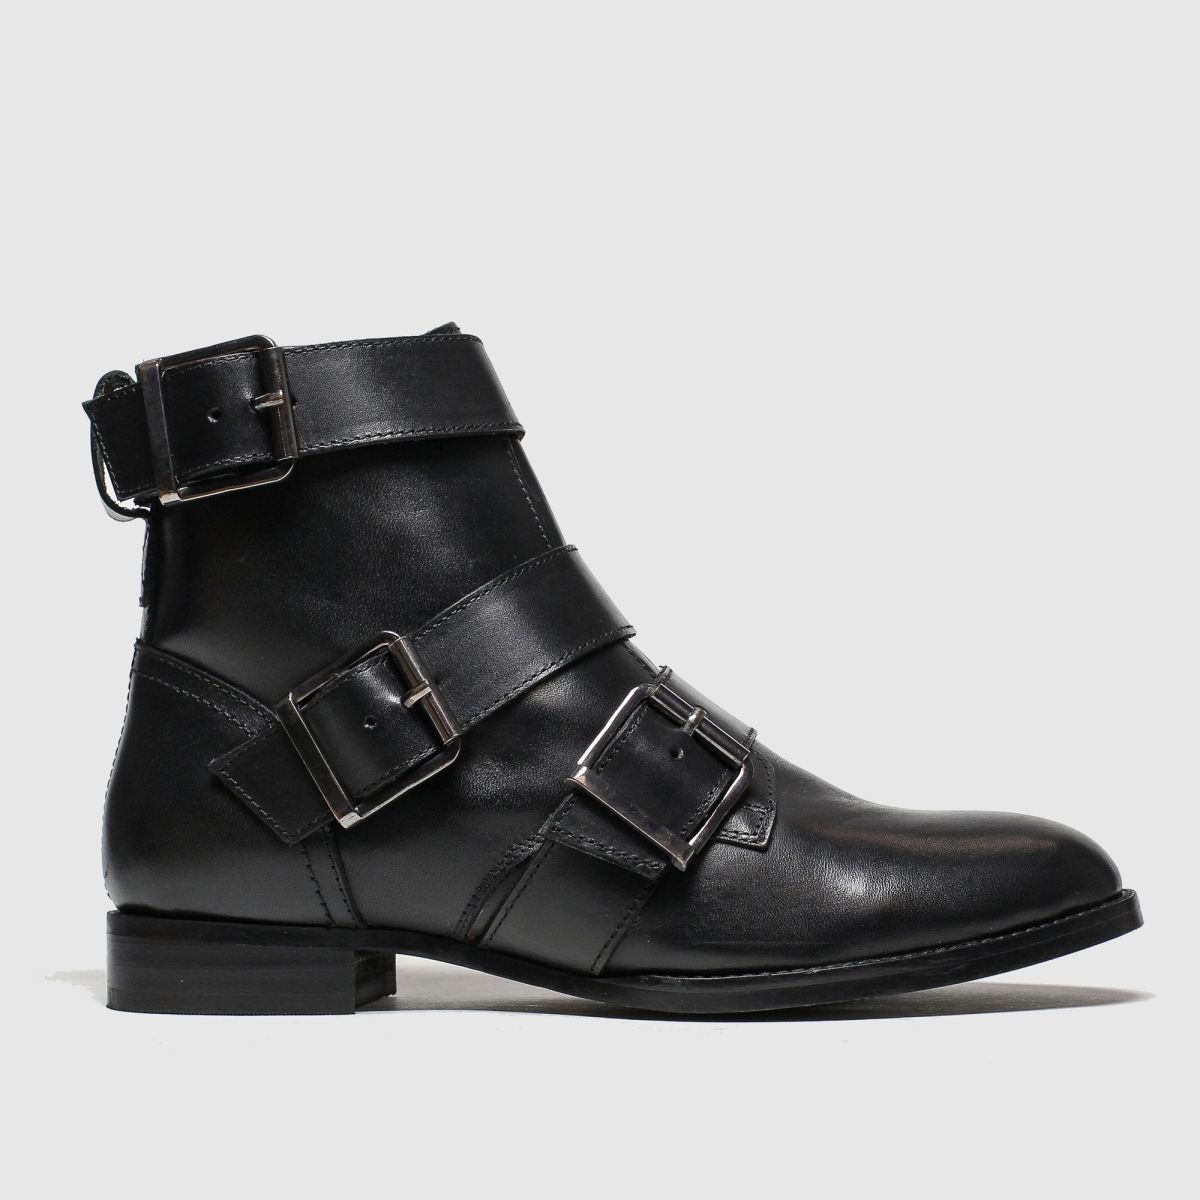 schuh Schuh Black Buckle Up Boots